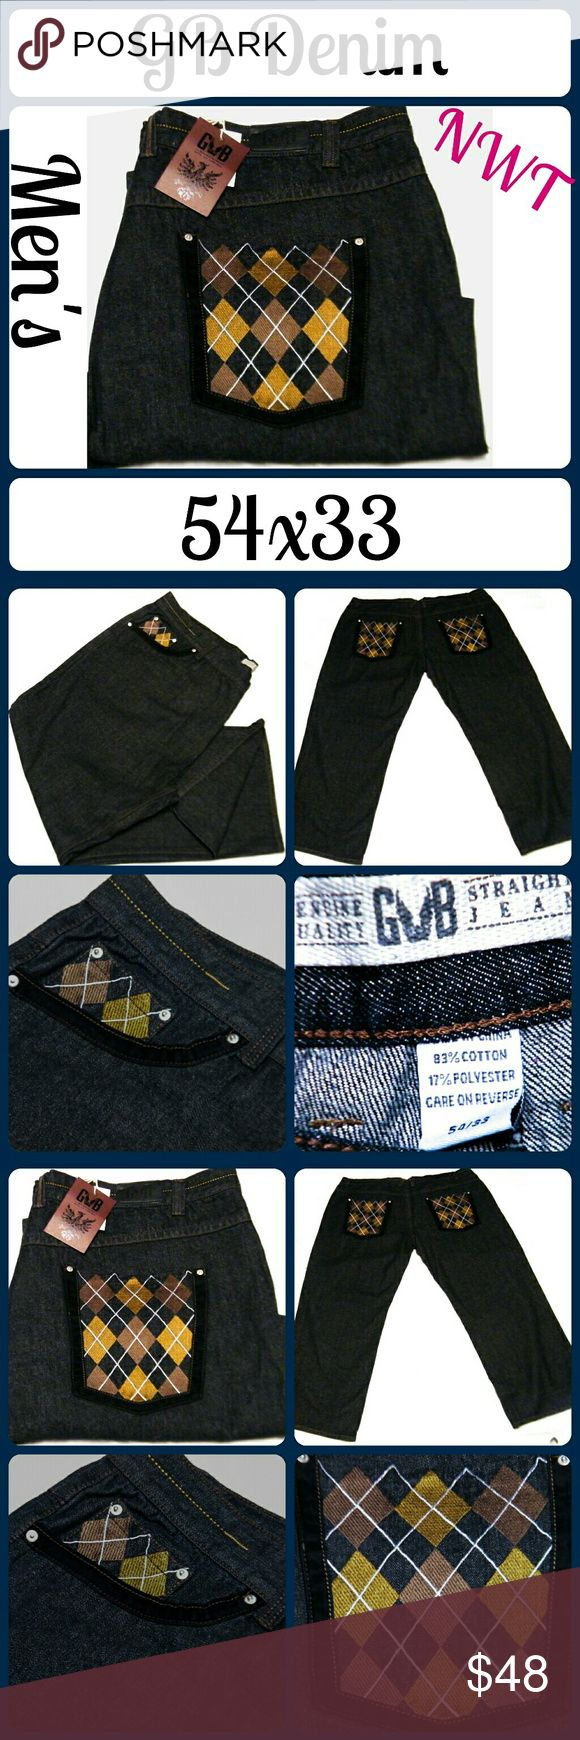 "NWT Mens GB Black Jeans Sz 54x33 So perfectly on trend! Brand new without tags.83% Cotton, 17% Polyester. Waist 54"", Inseam 33"" , Rise 14"" ... From a smoke-free, dog friendly home, No trades!! (J58) GB Denim Jeans Straight"